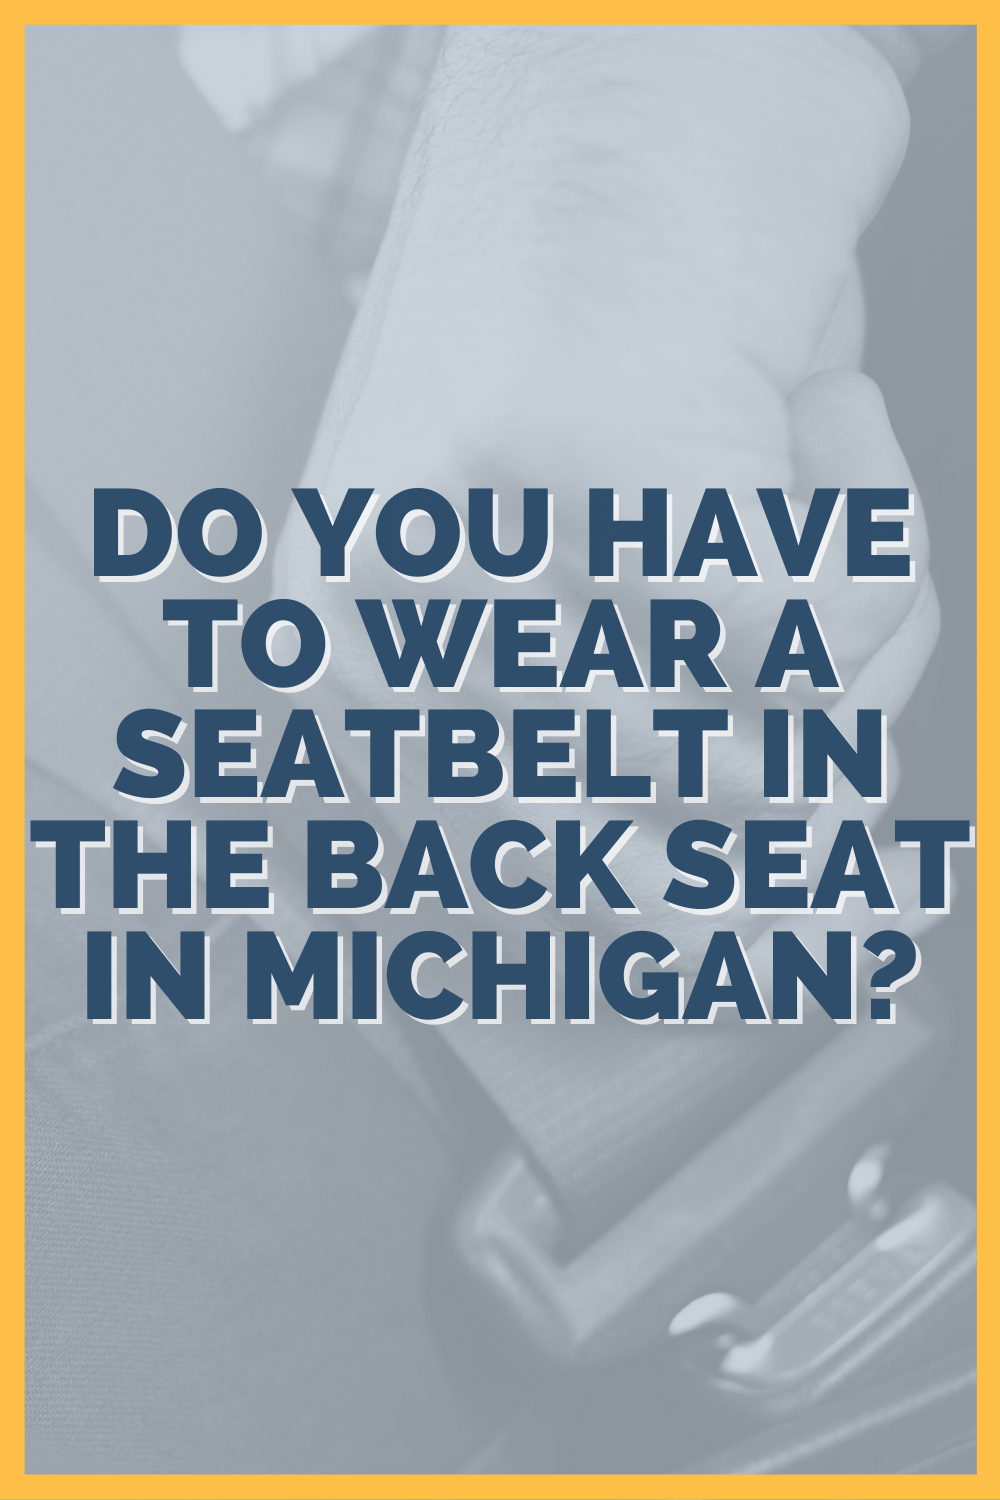 Do You Have To Wear A Seatbelt In The Back Seat In Michigan?